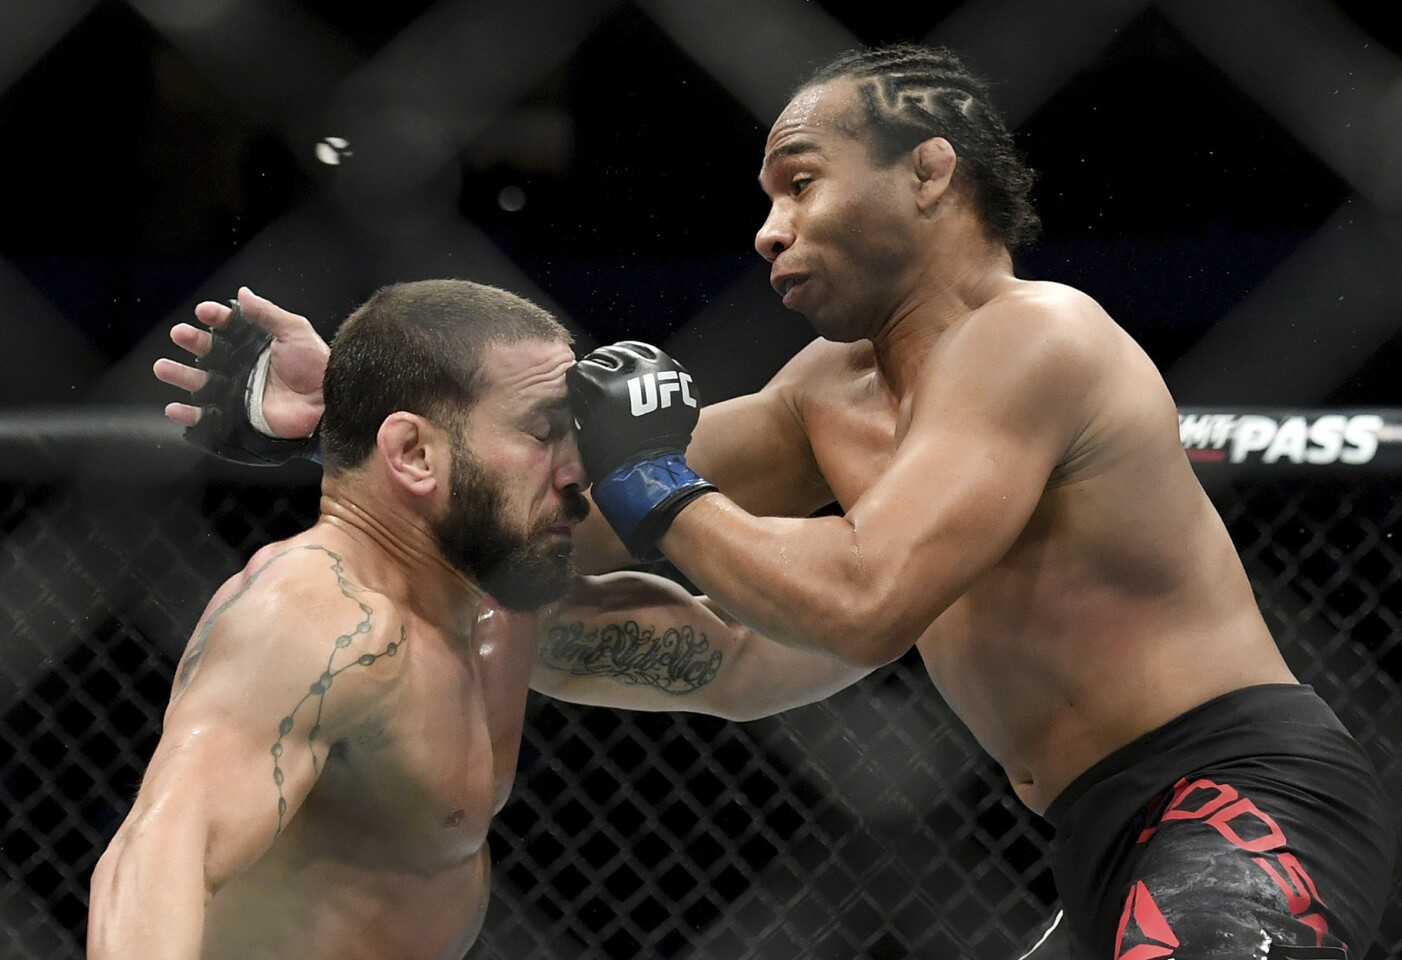 John Dodson, right, punches Jimmie Rivera during their bantamweight mixed martial arts bout at UFC 228 on Saturday, Sept. 8, 2018, in Dallas. (AP Photo/Jeffrey McWhorter)